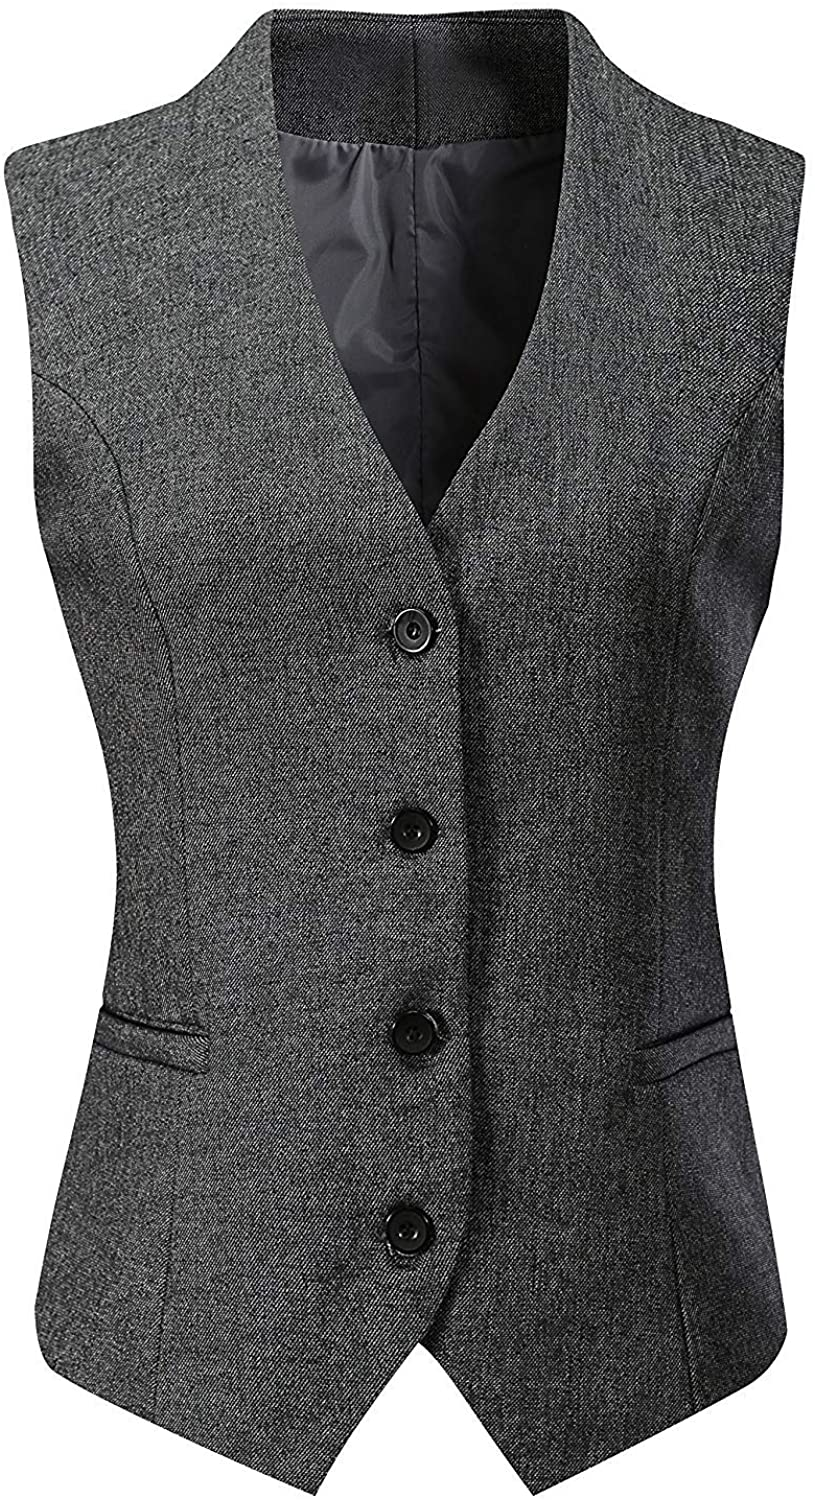 "Vocni Women's Fully Lined 4 Button V-Neck Economy Dressy Suit Vest Waistcoat ,Gray ,US XL (Fit Bust 42.9""-45.3""),Asia 7XL"